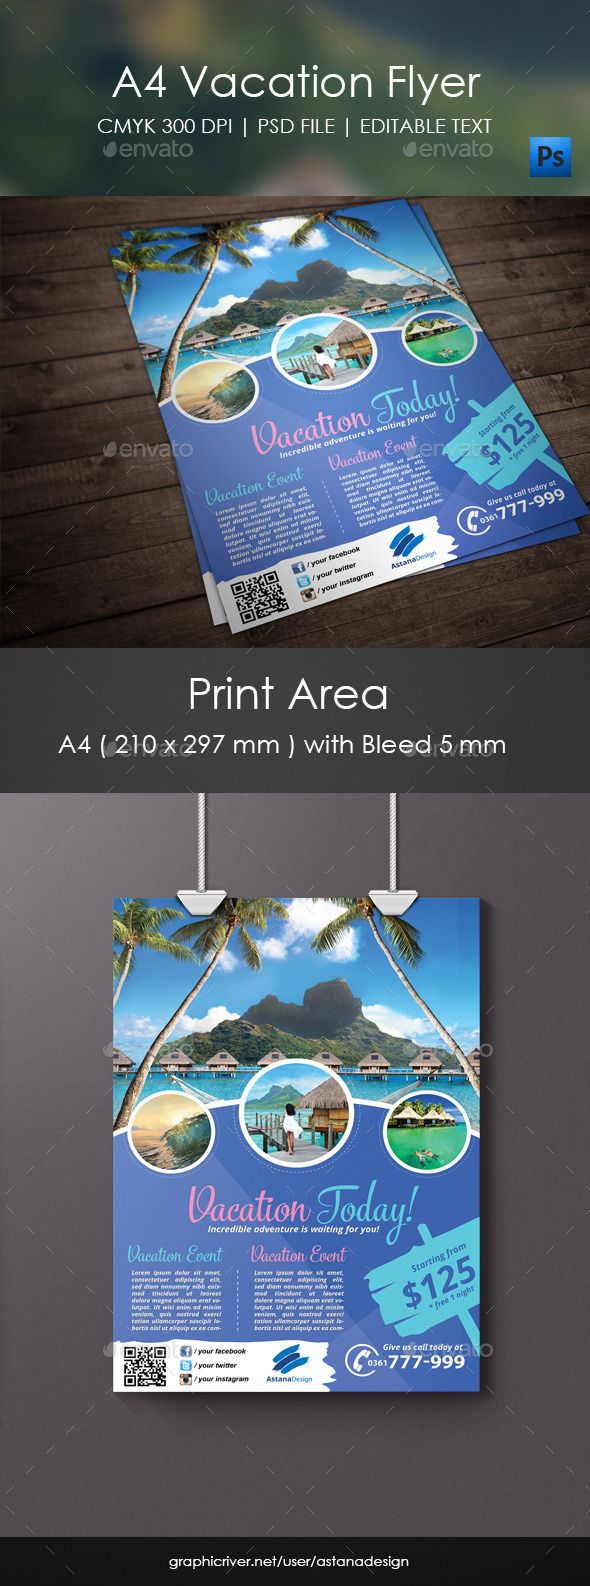 vacation flyer print templates flyers corporate to help find this